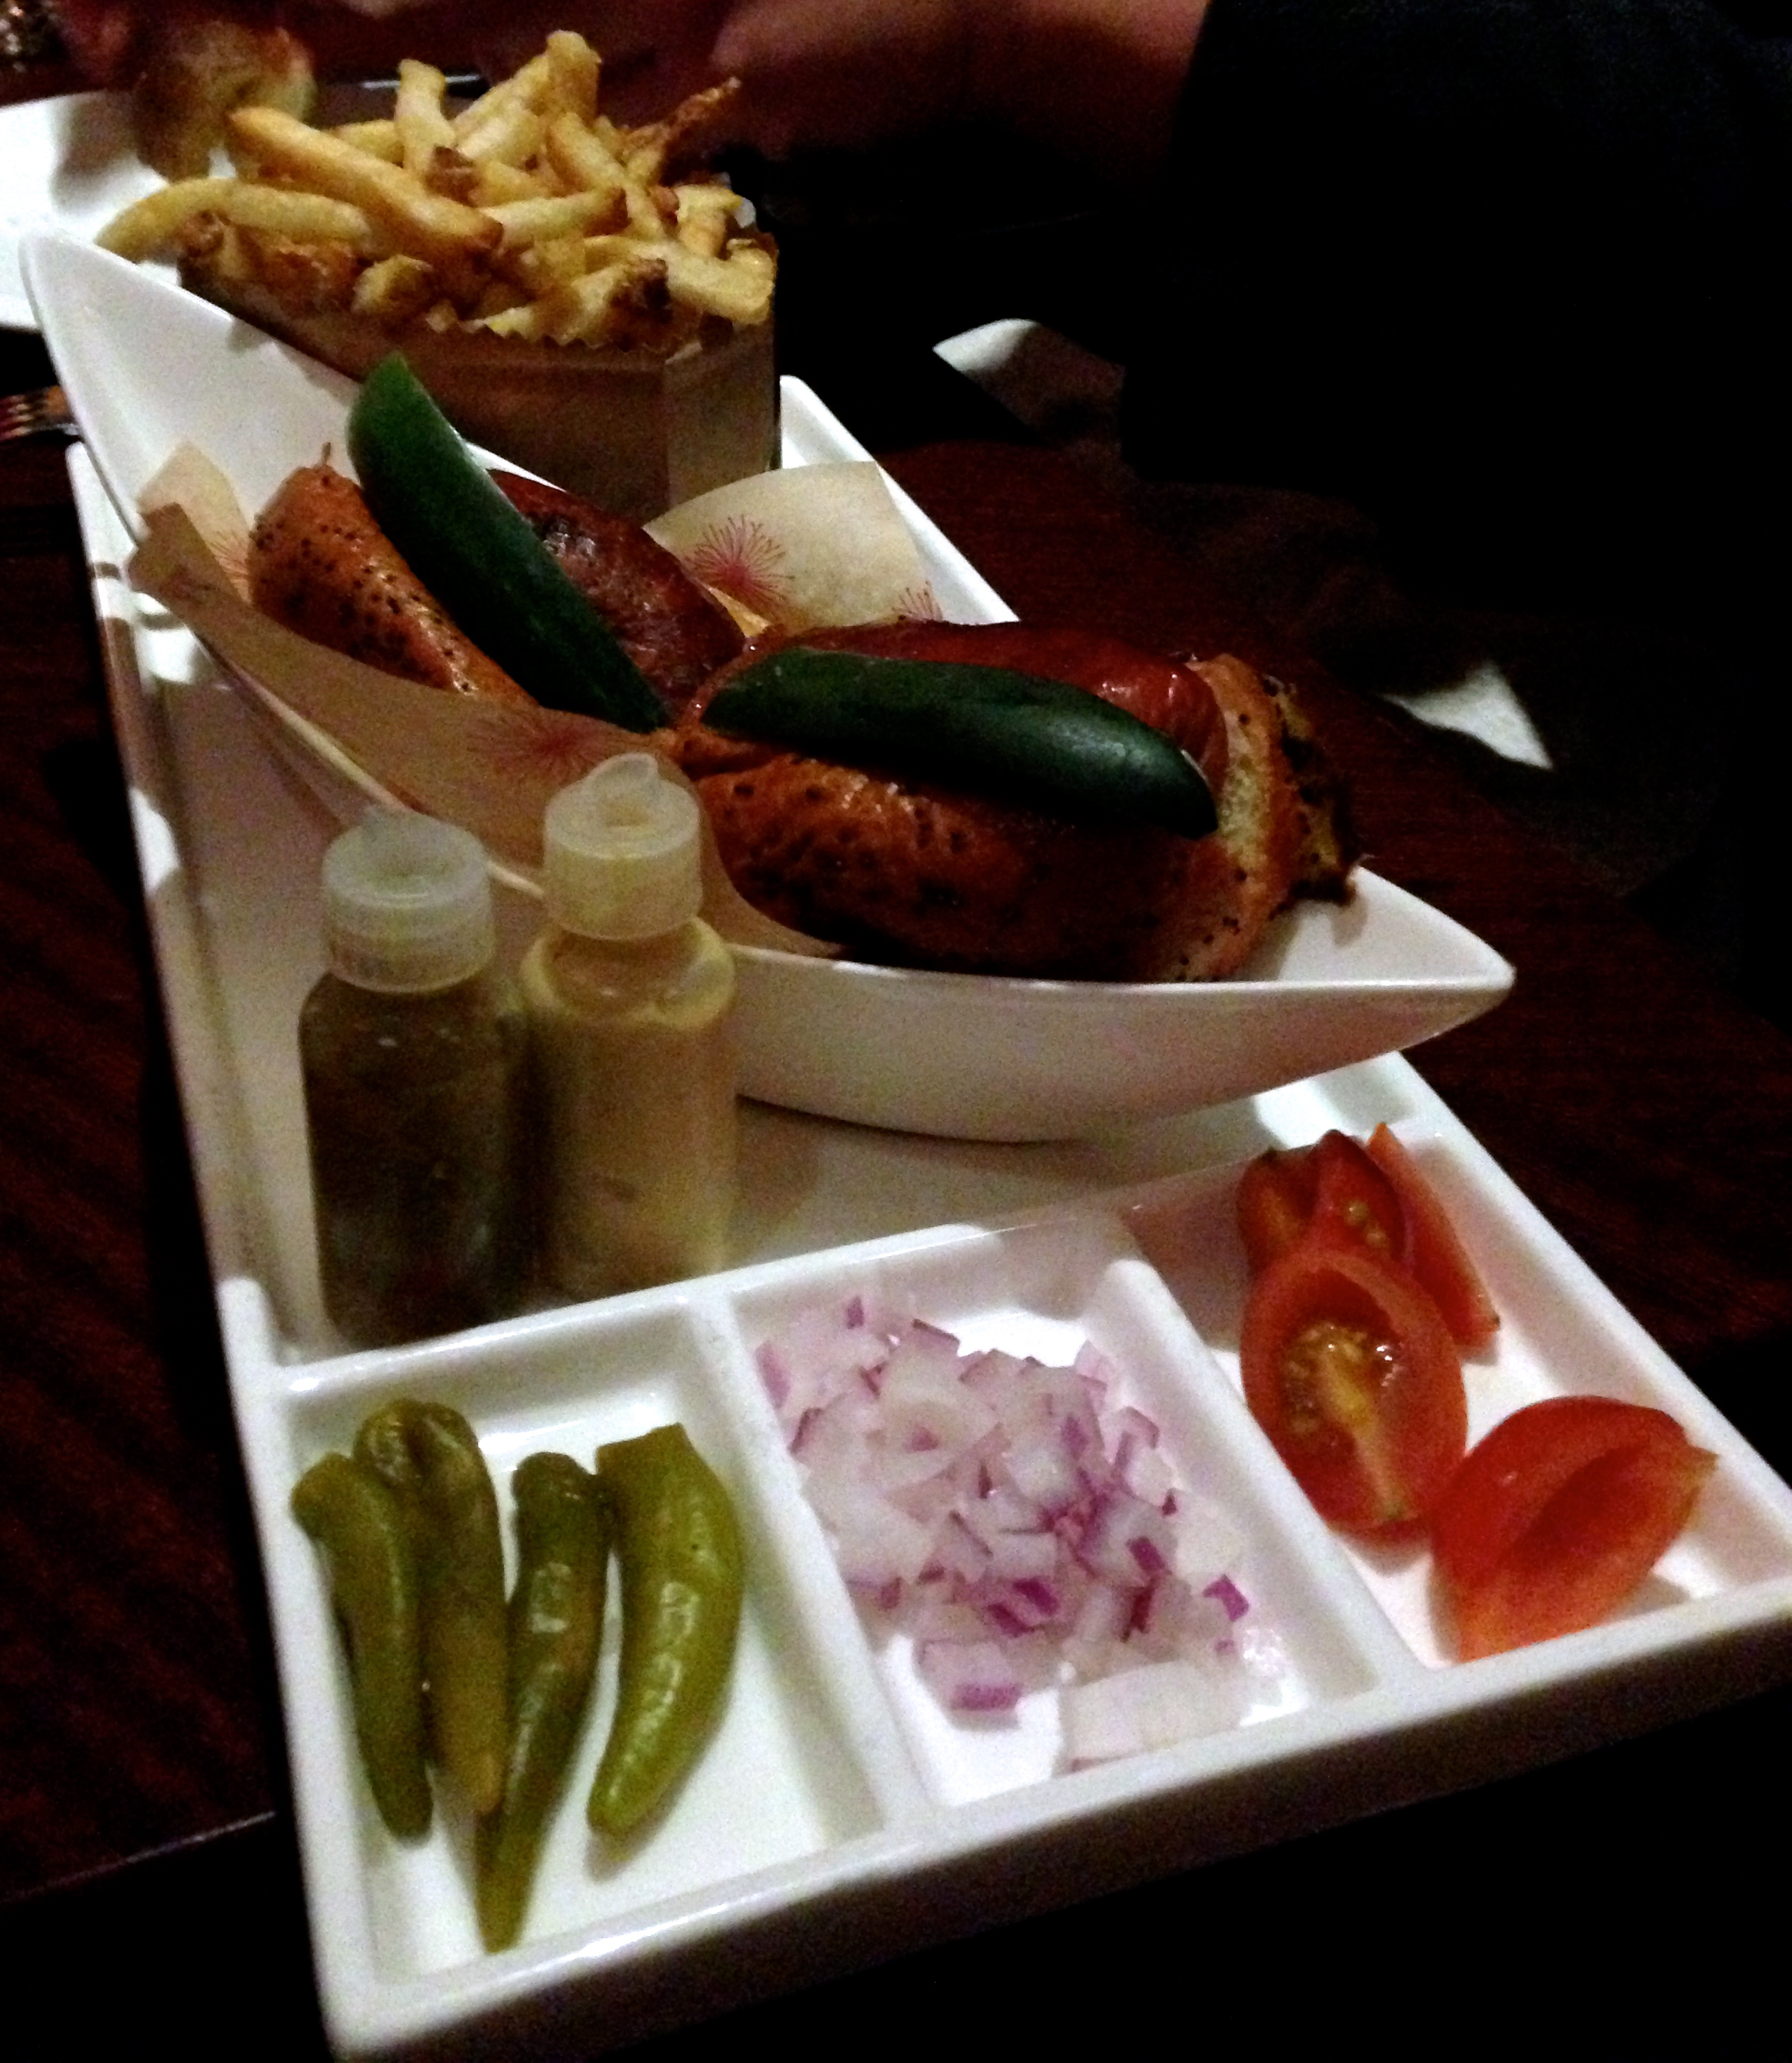 Figure 11. Chicago style hot dog